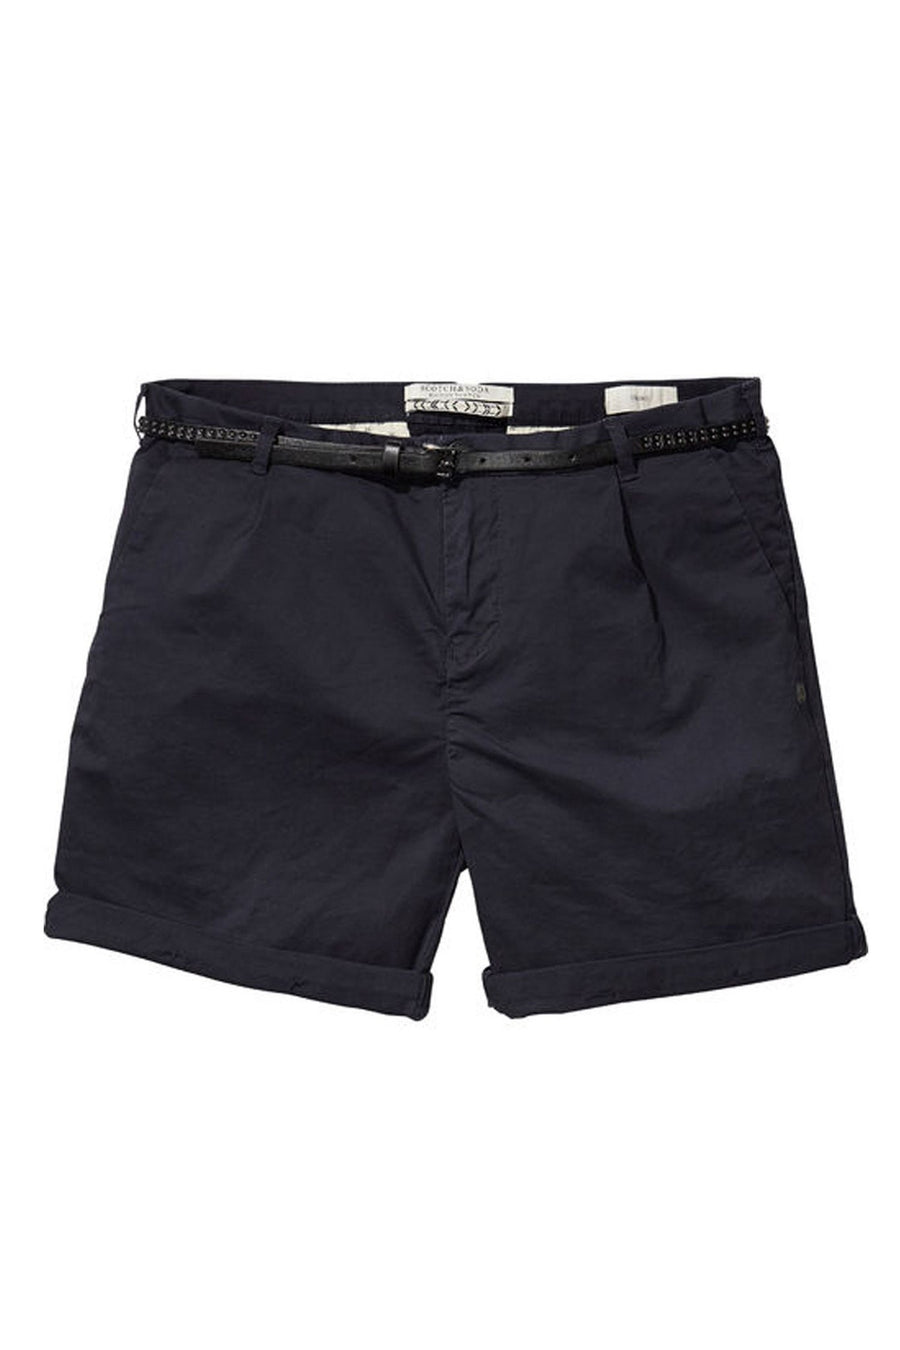 new-fit-night-chino-short-by-maison-scotch